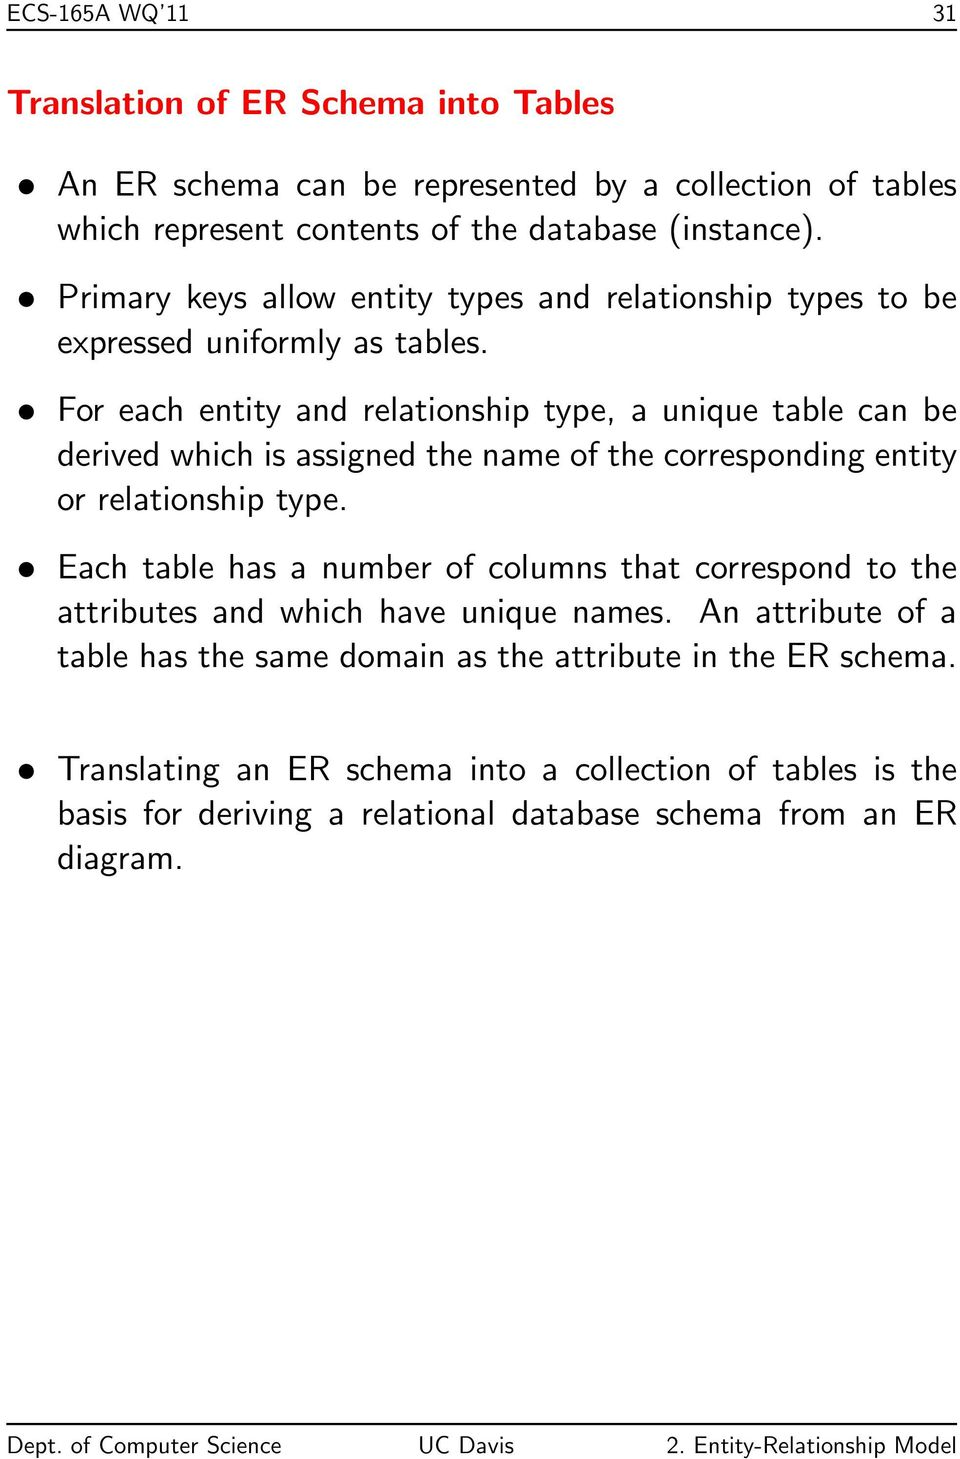 For each entity and relationship type, a unique table can be derived which is assigned the name of the corresponding entity or relationship type.